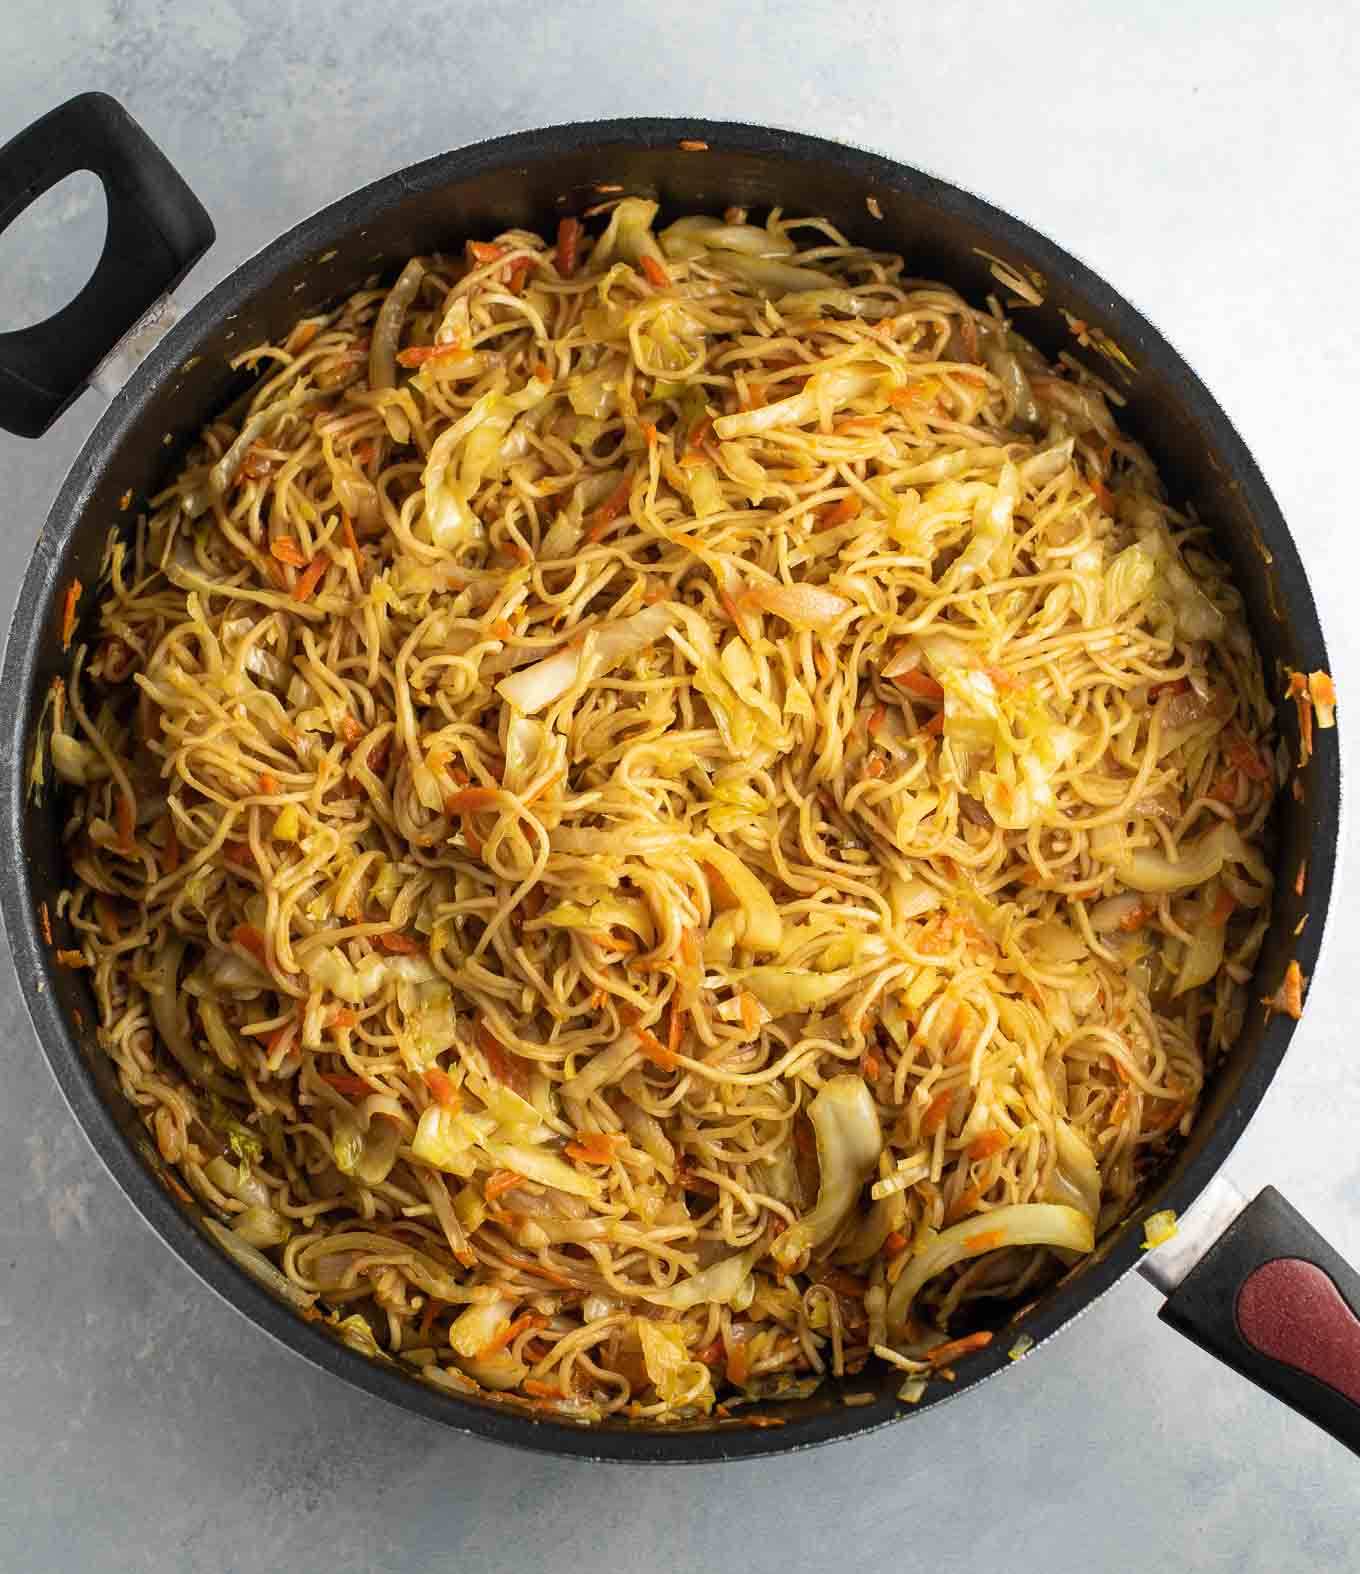 overhead view of a skillet full of cooked cabbage stir fry noodles